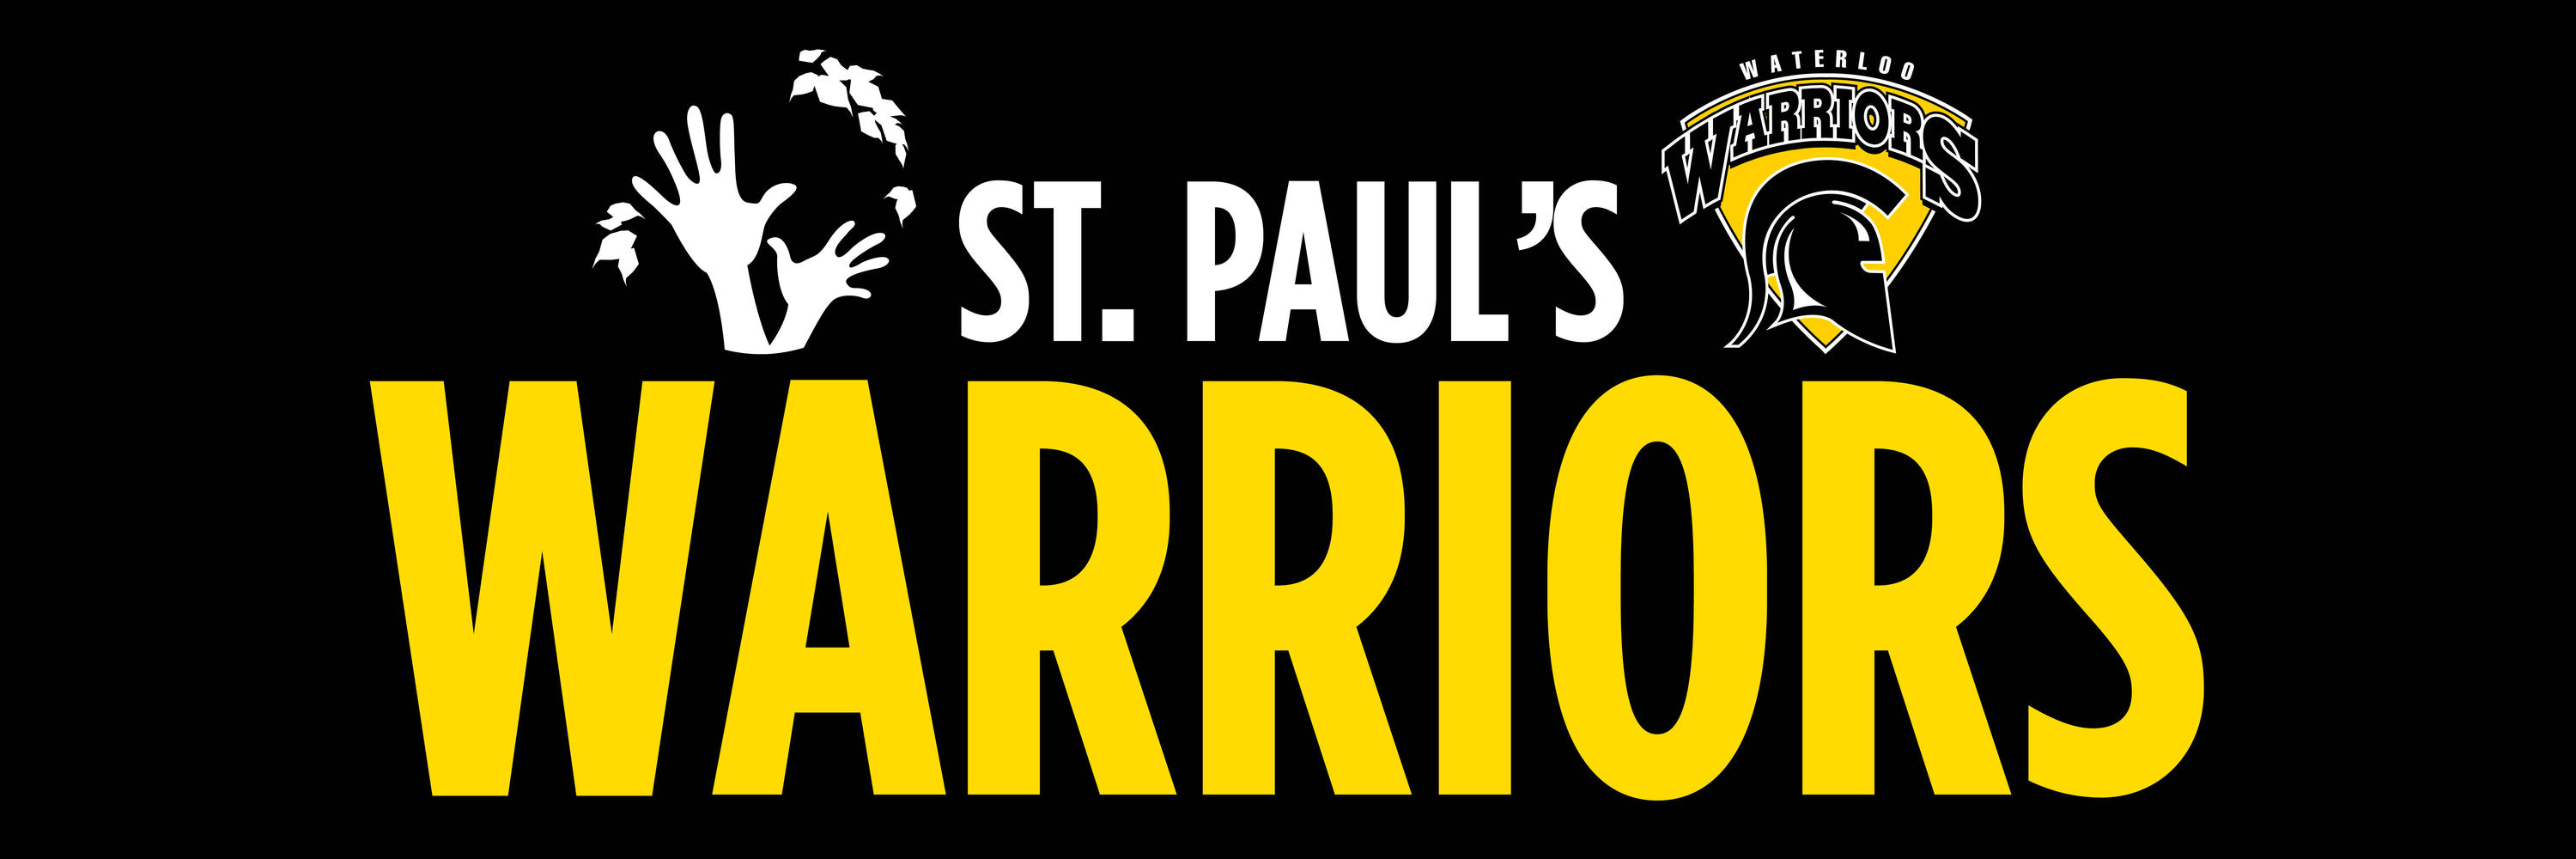 St. Paul's Warriors sign